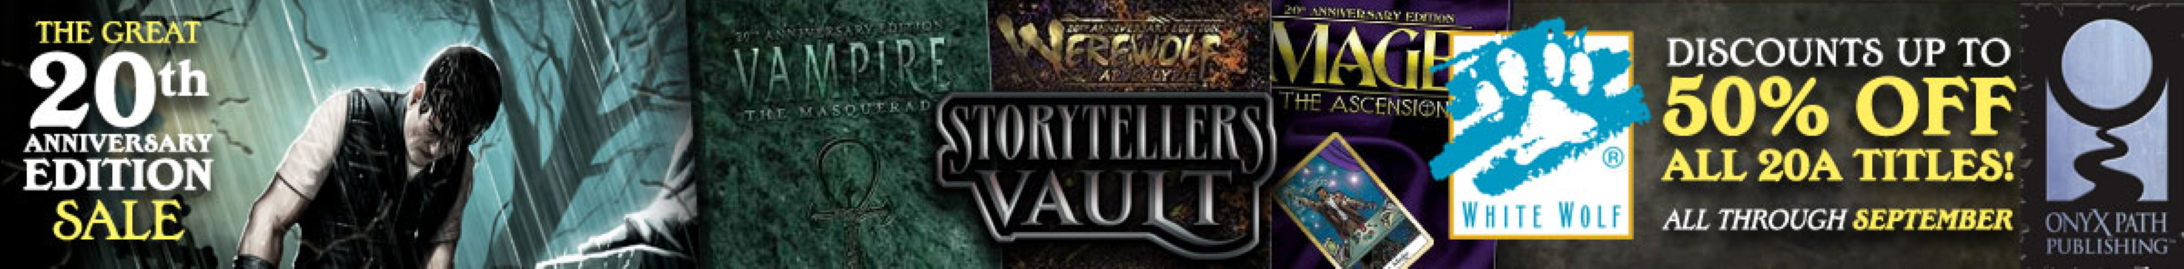 The Great 20th Anniversary sale @ Storytellers Vault